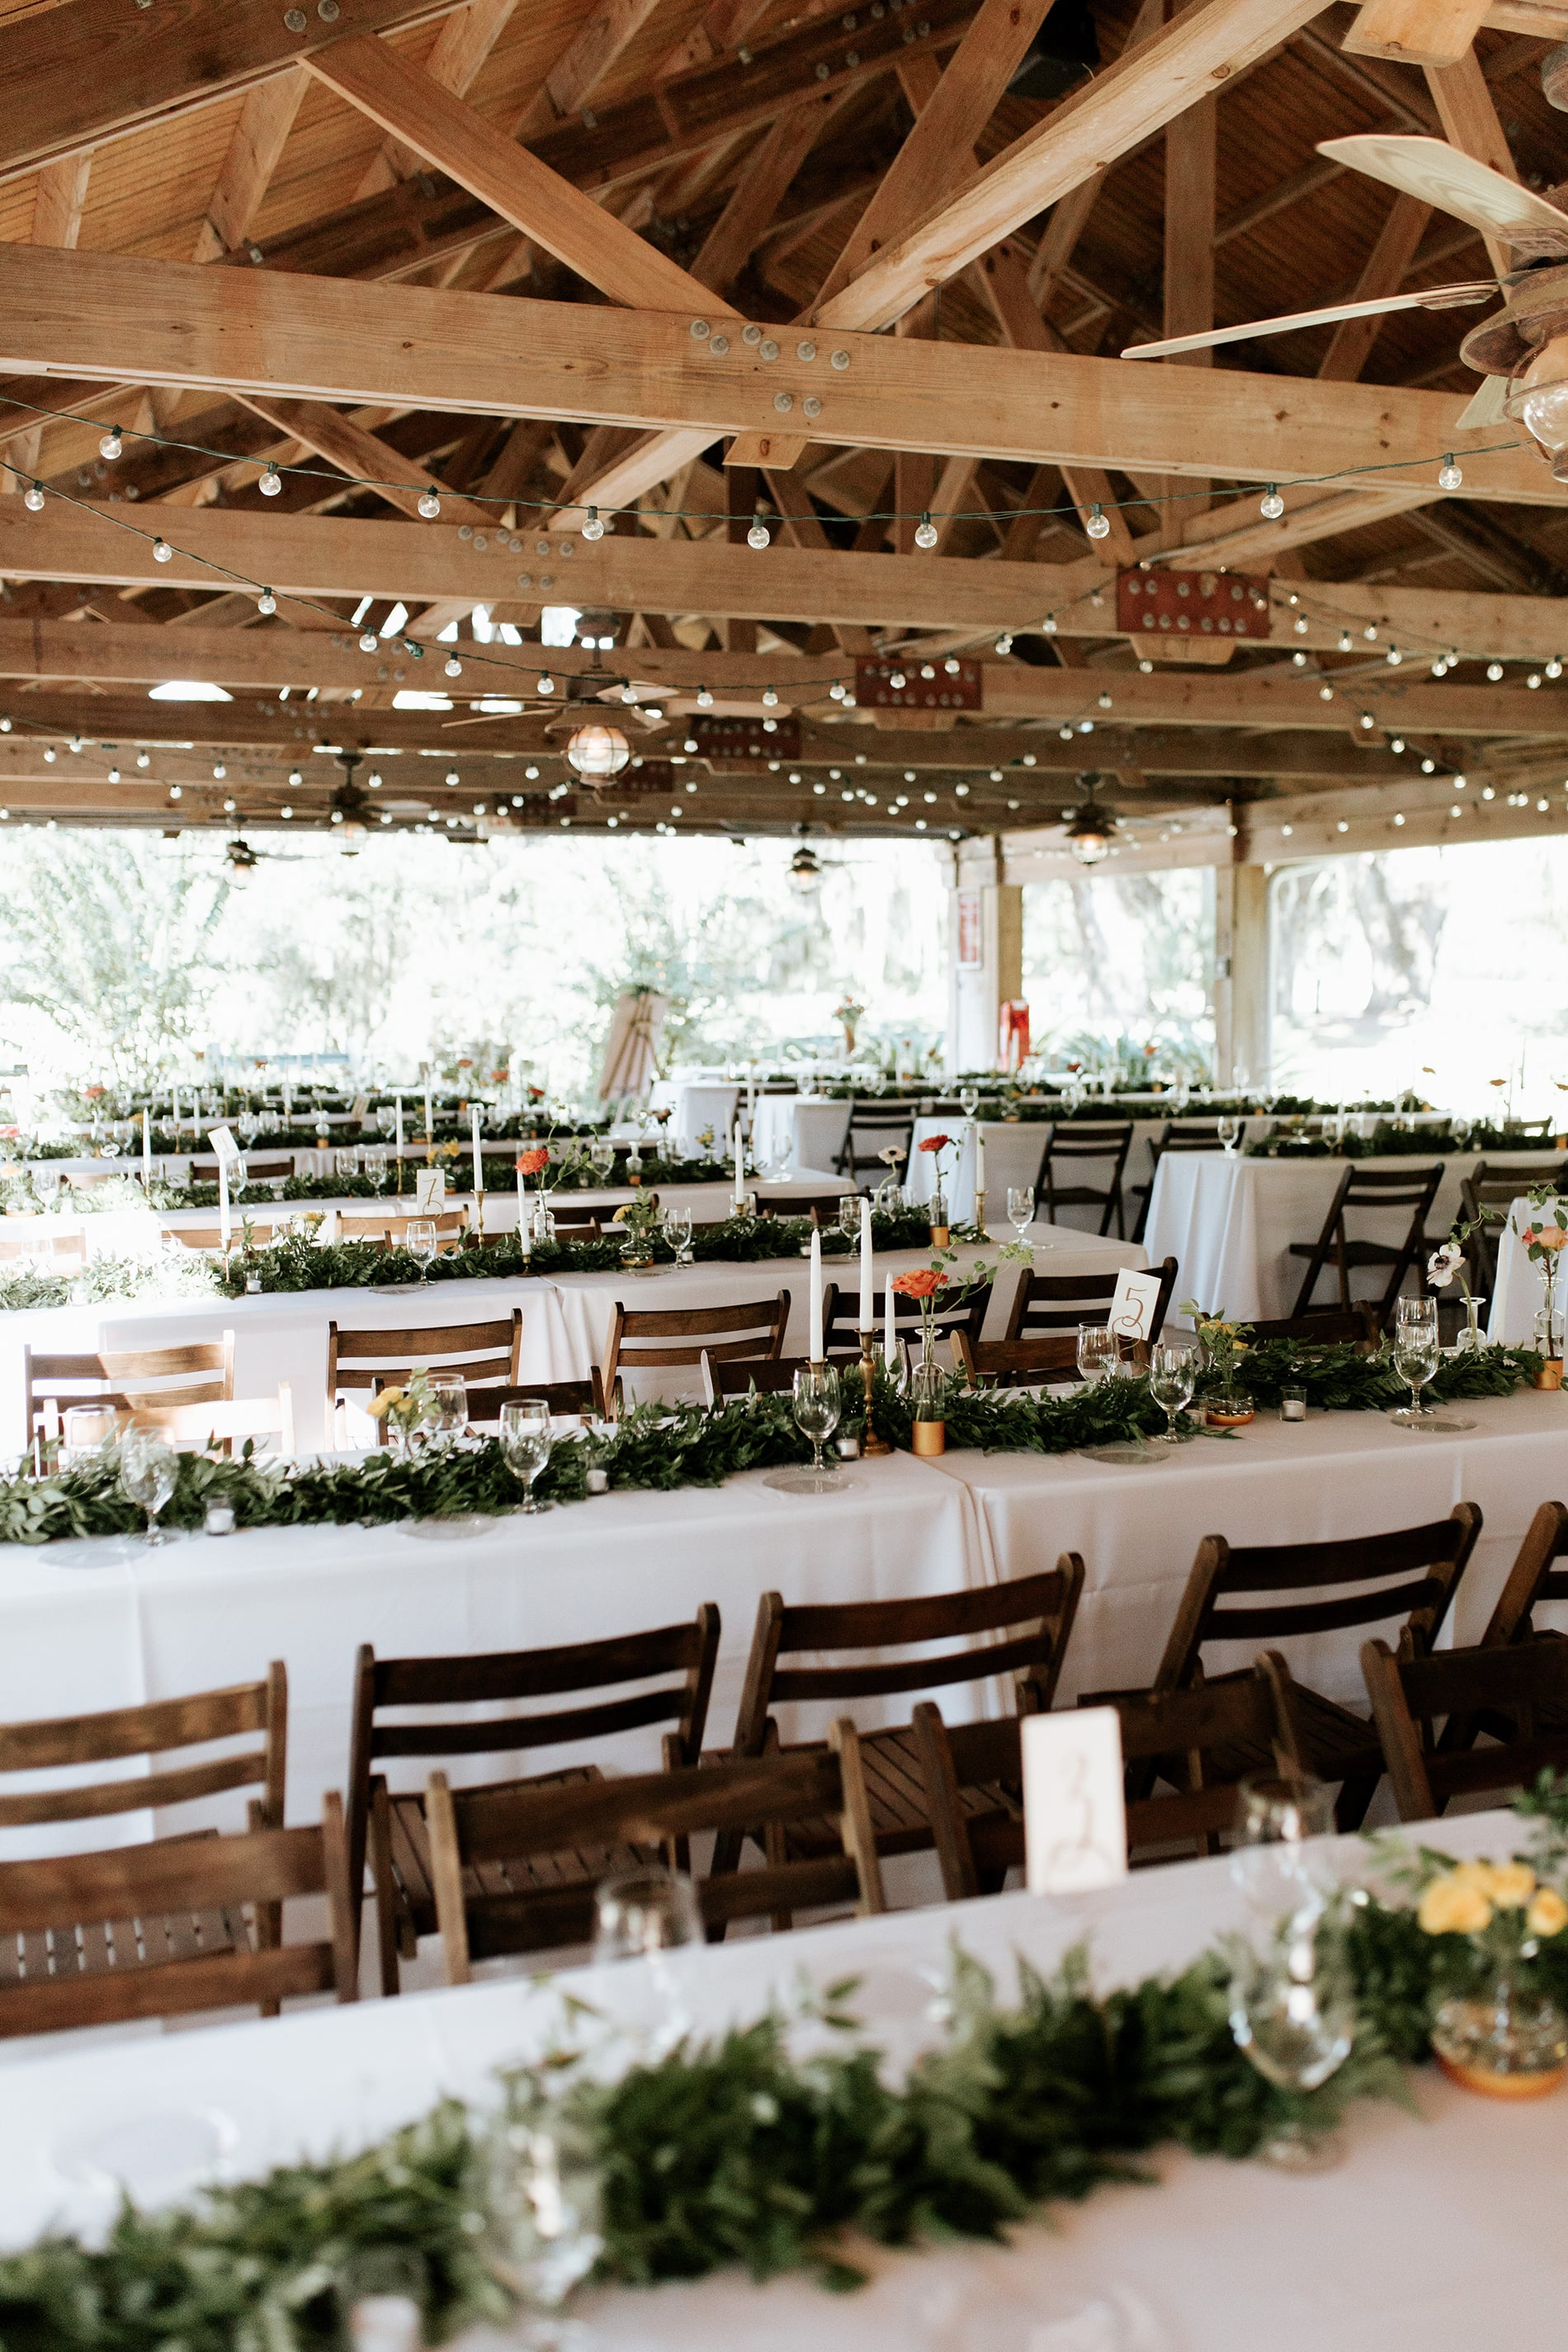 lowcountry-kitchen-catering-beaufort-sc-mary-grace-and-judd-kennedy-wedding-ceremony-bingo-tables-min.jpg